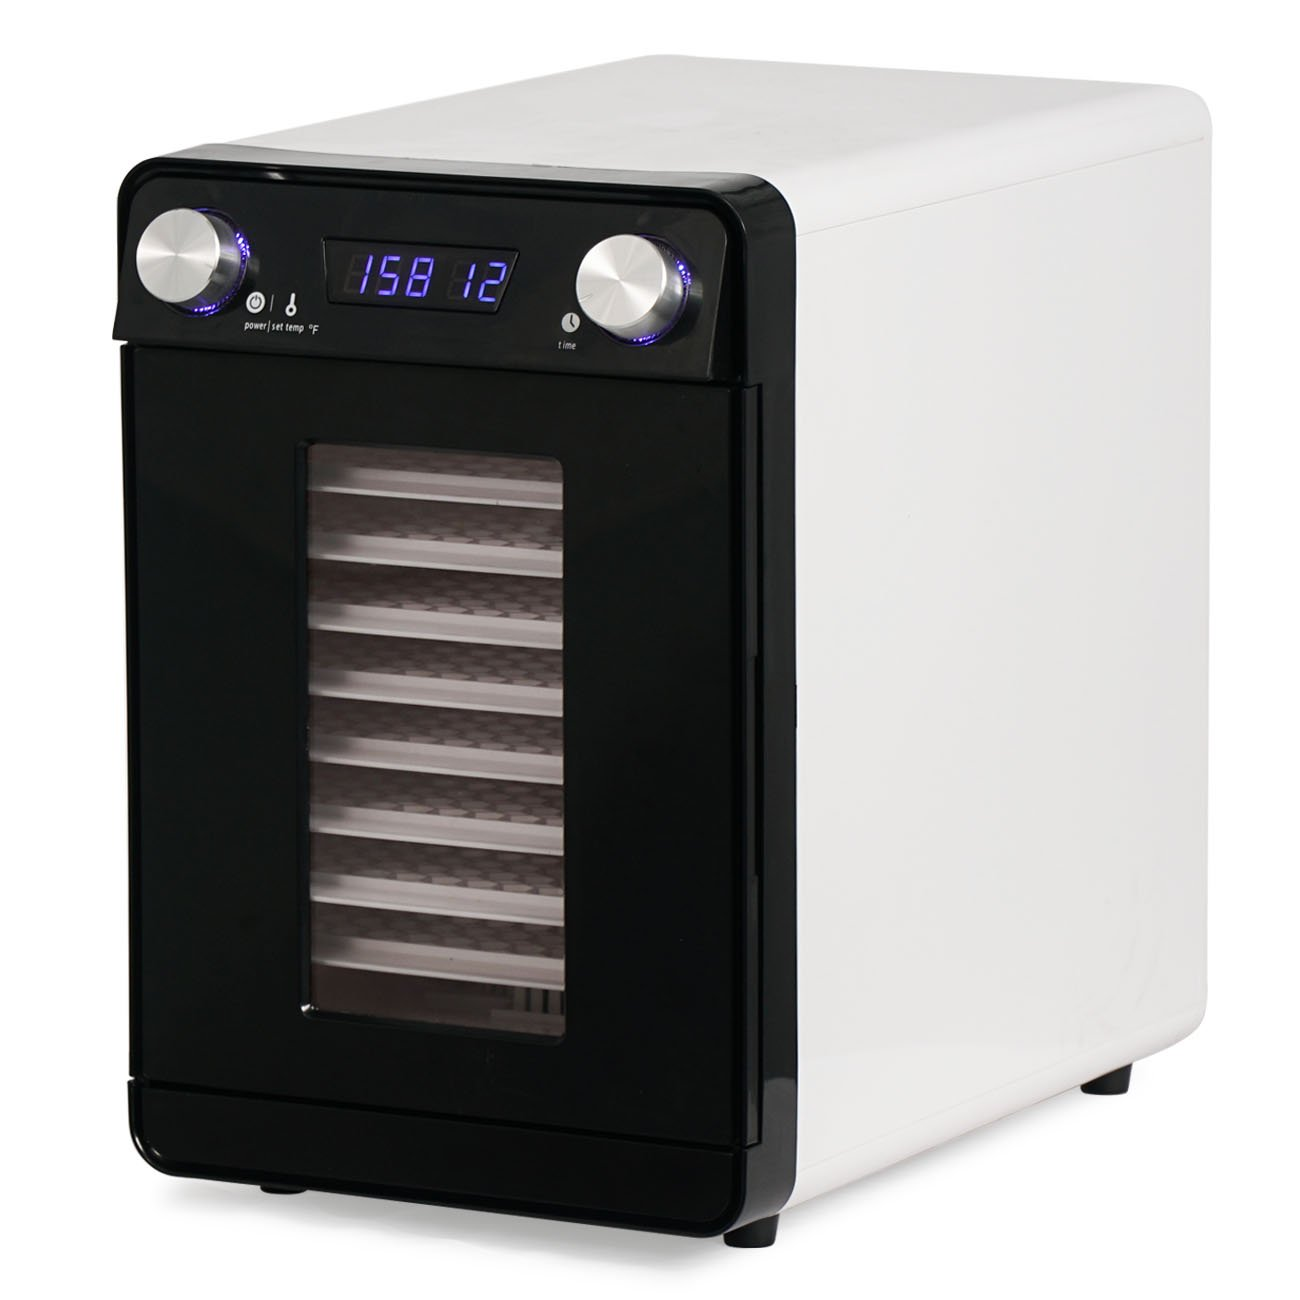 Della Food Dehydrator Fruit Jerky Dryer Drying 9 Trays Adjustable Temperature and Timer Blower, White